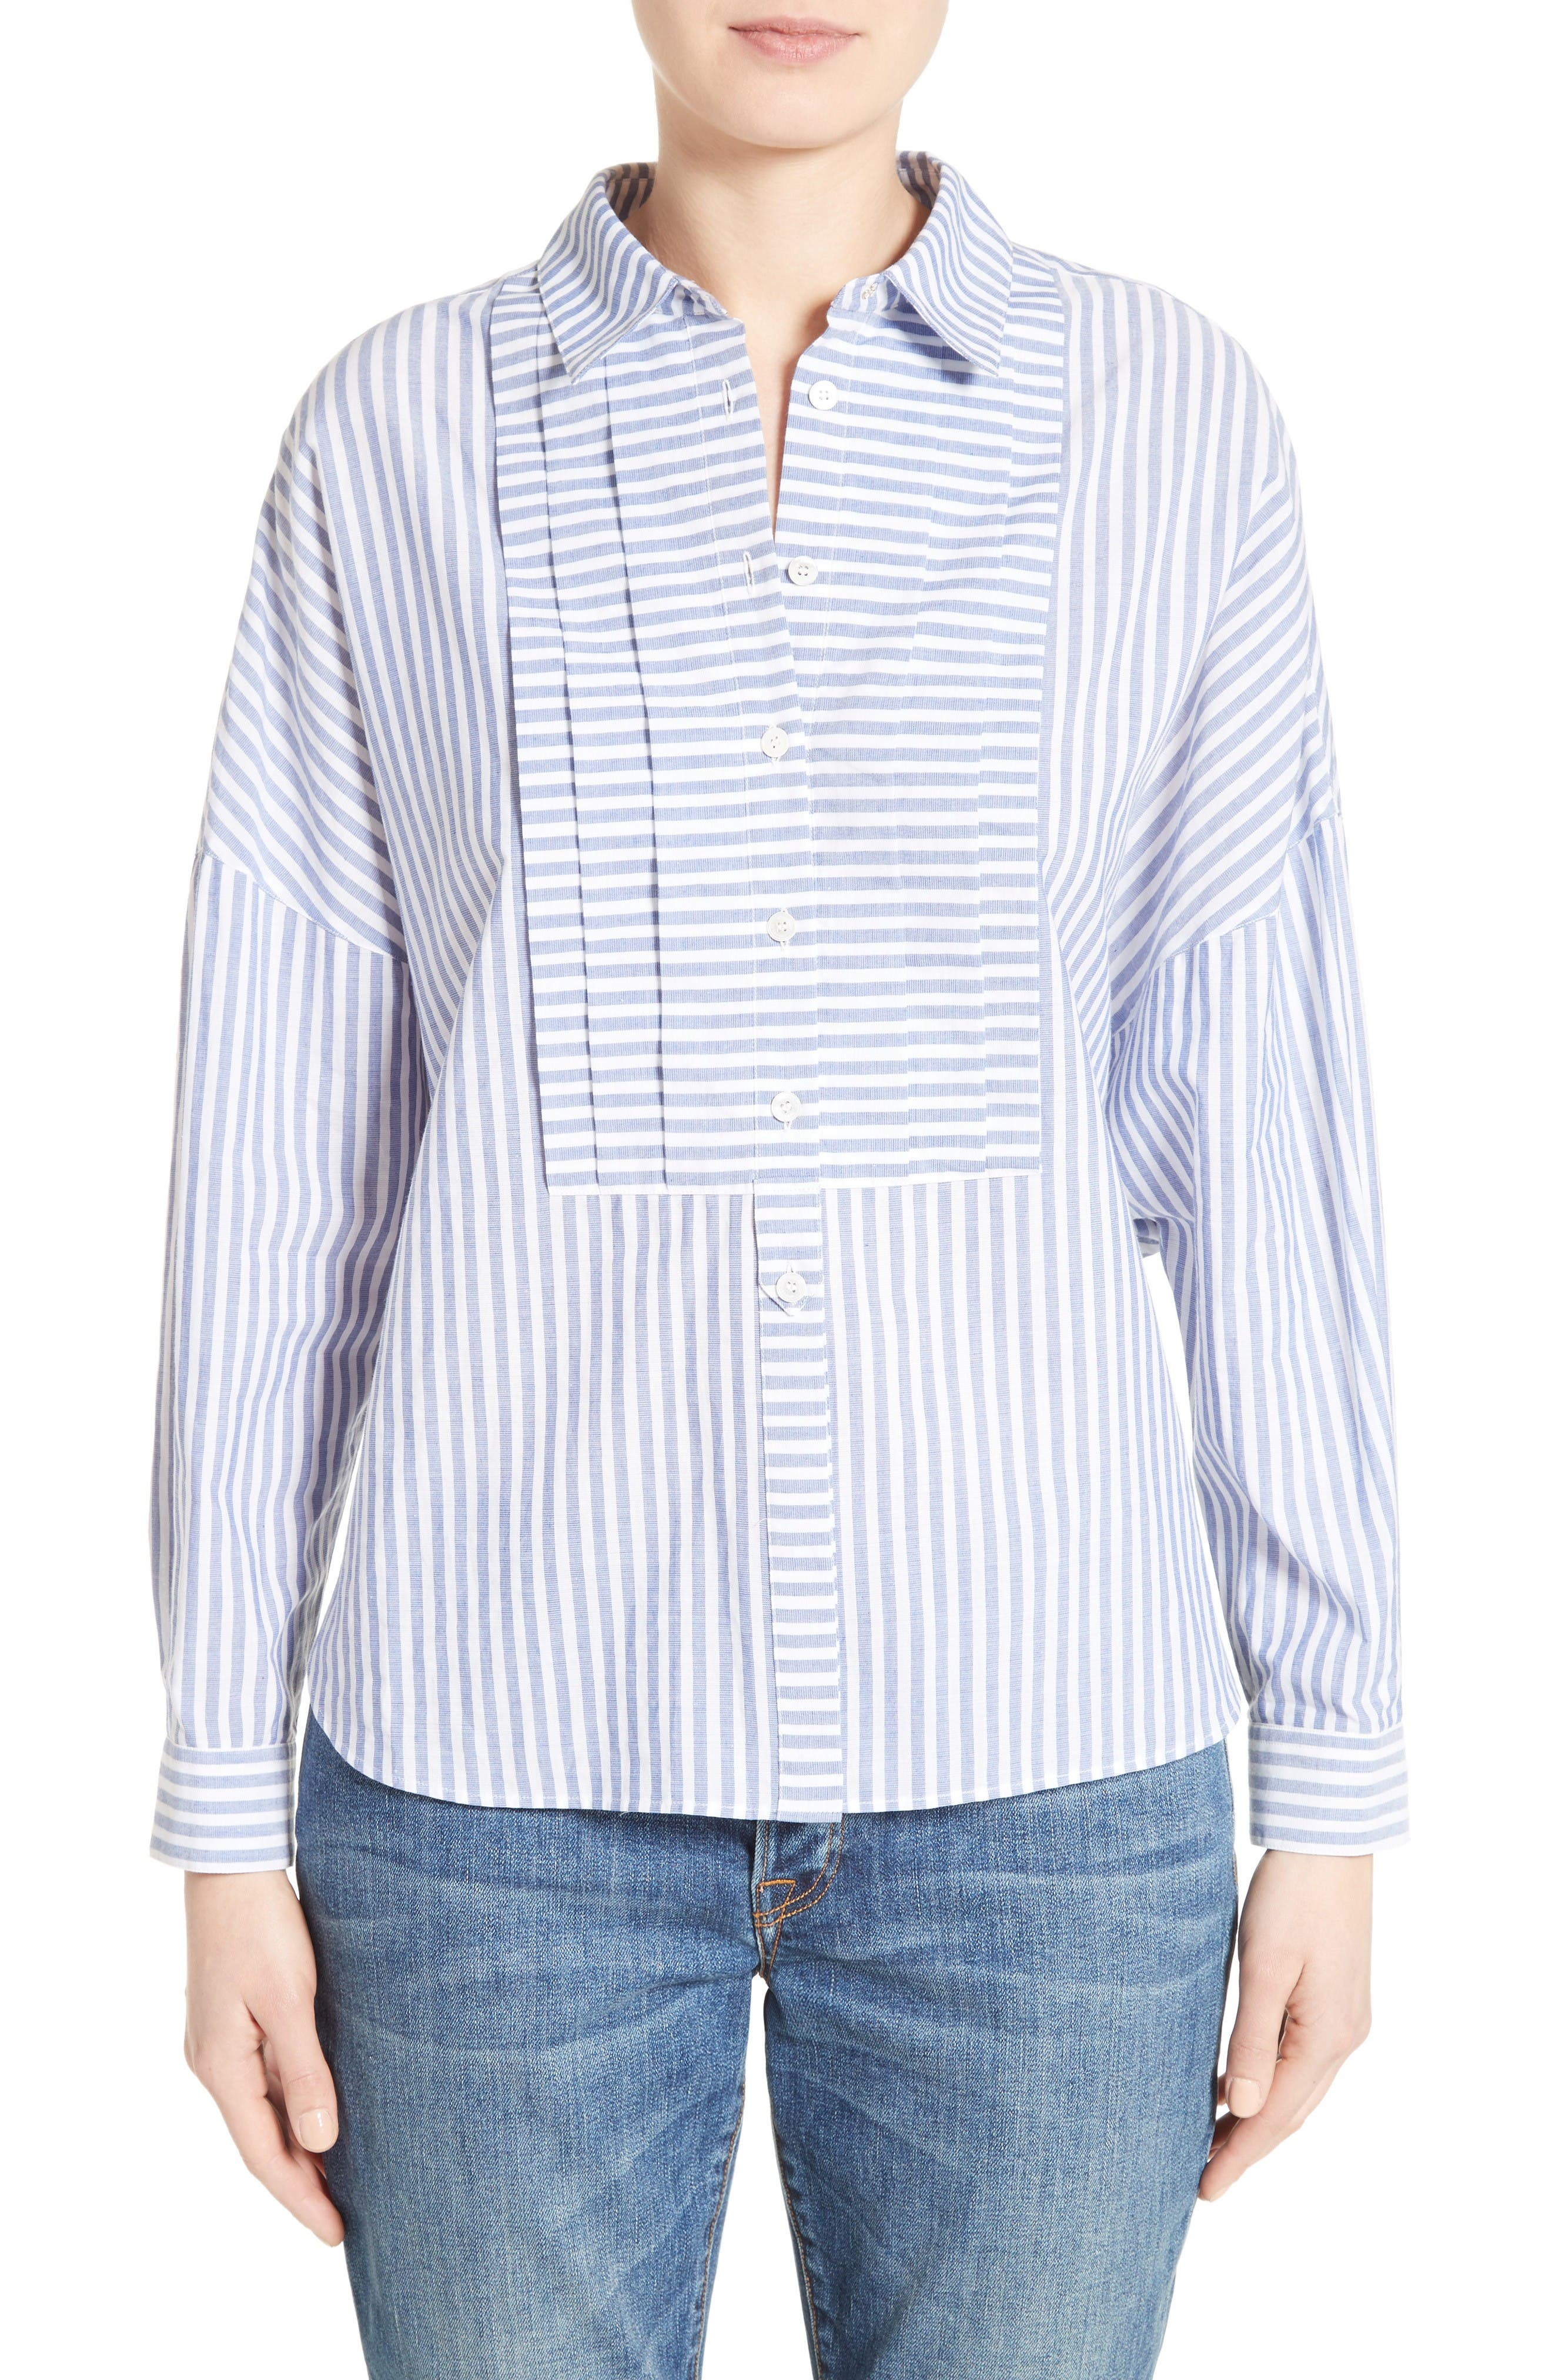 Posy Stripe Bib Boyfriend Shirt,                         Main,                         color, Pale Blue/ White